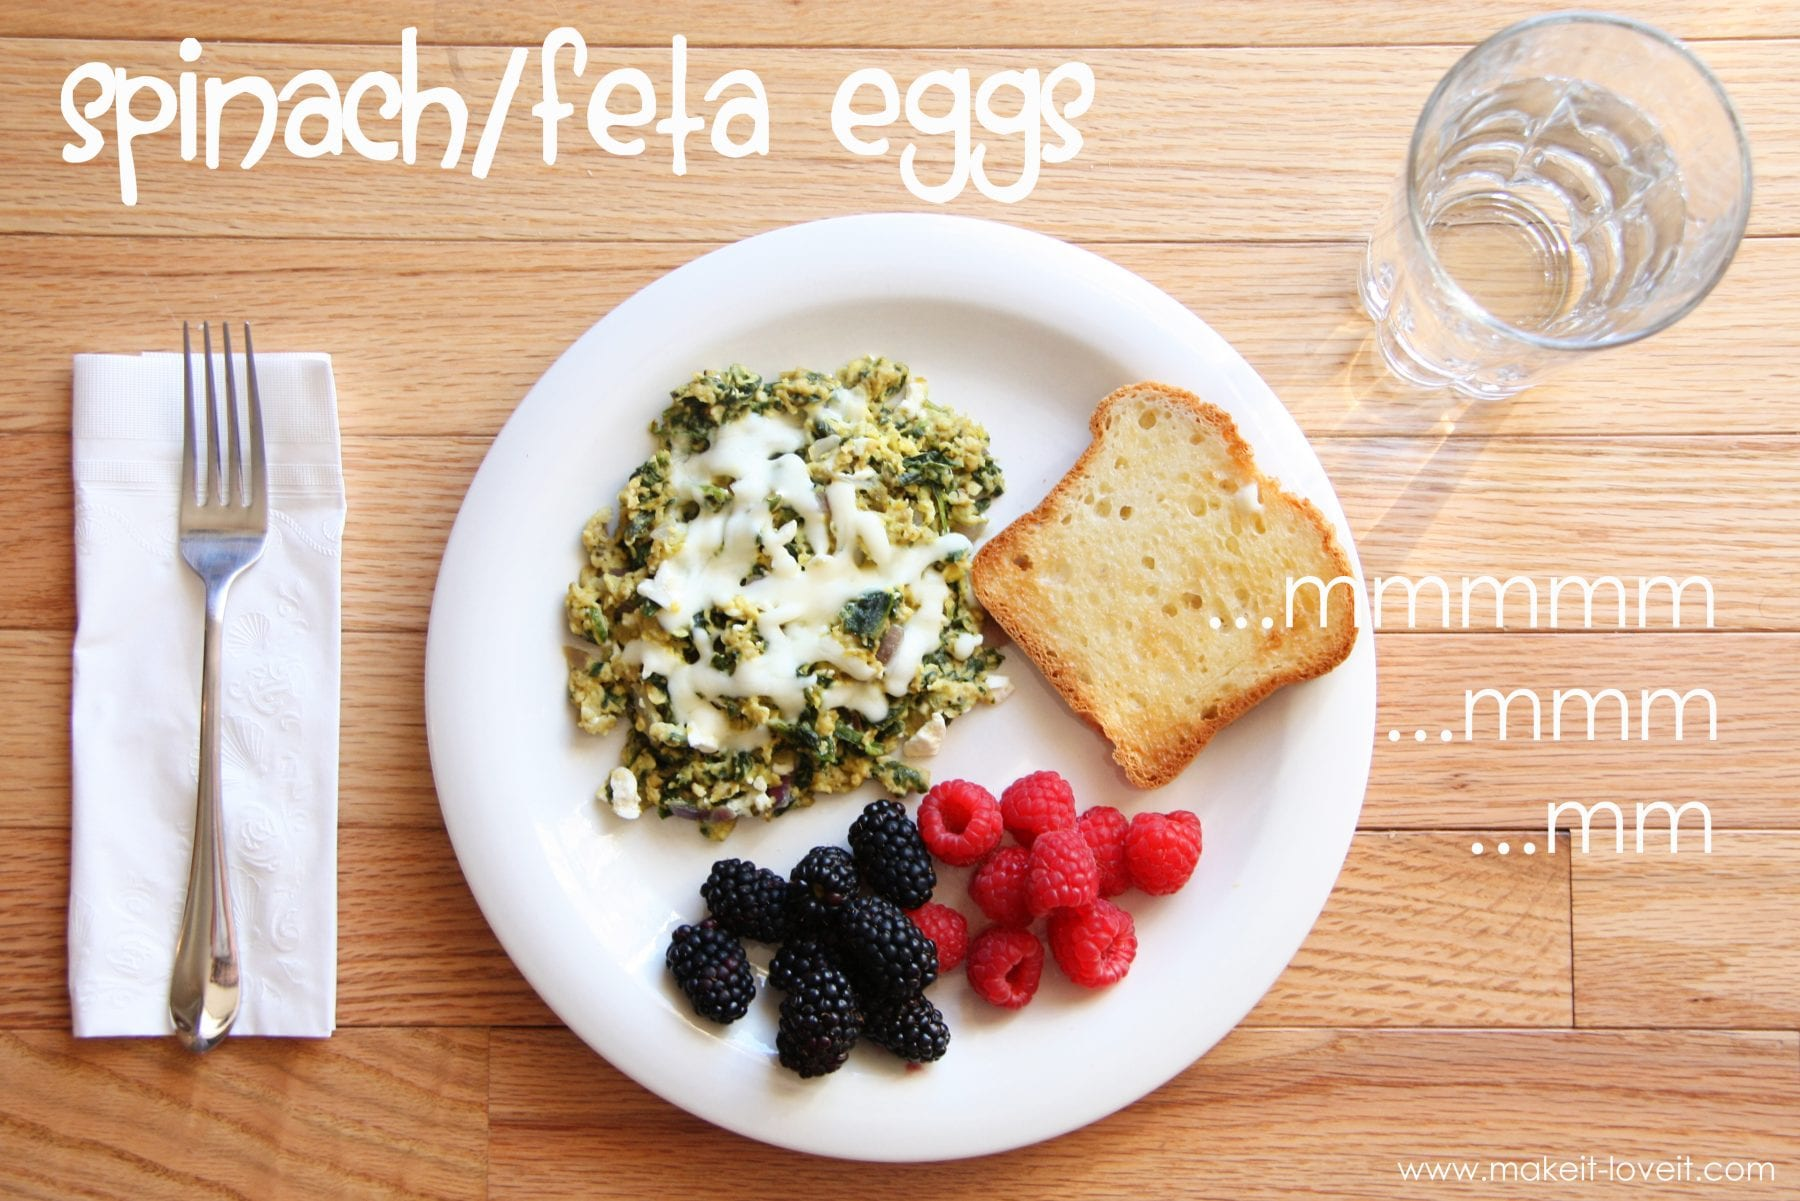 Recipe for Spinach/Feta Eggs (Caution: Incredibly Delicious)